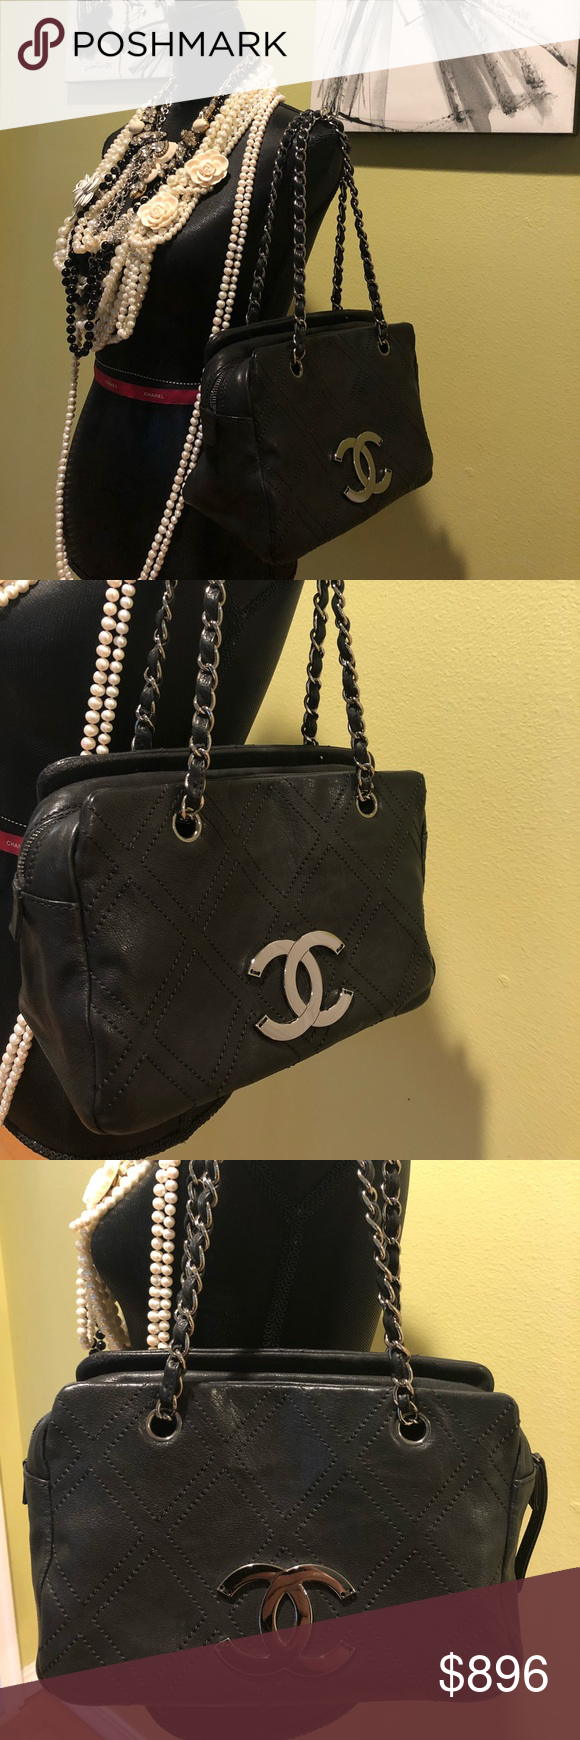 2a518cd7333c3a Chanel handbag Black CHANEL tote with silver front logo and chain ,have  original tag attached but been used and in excellent preowned condition CHANEL  Bags ...